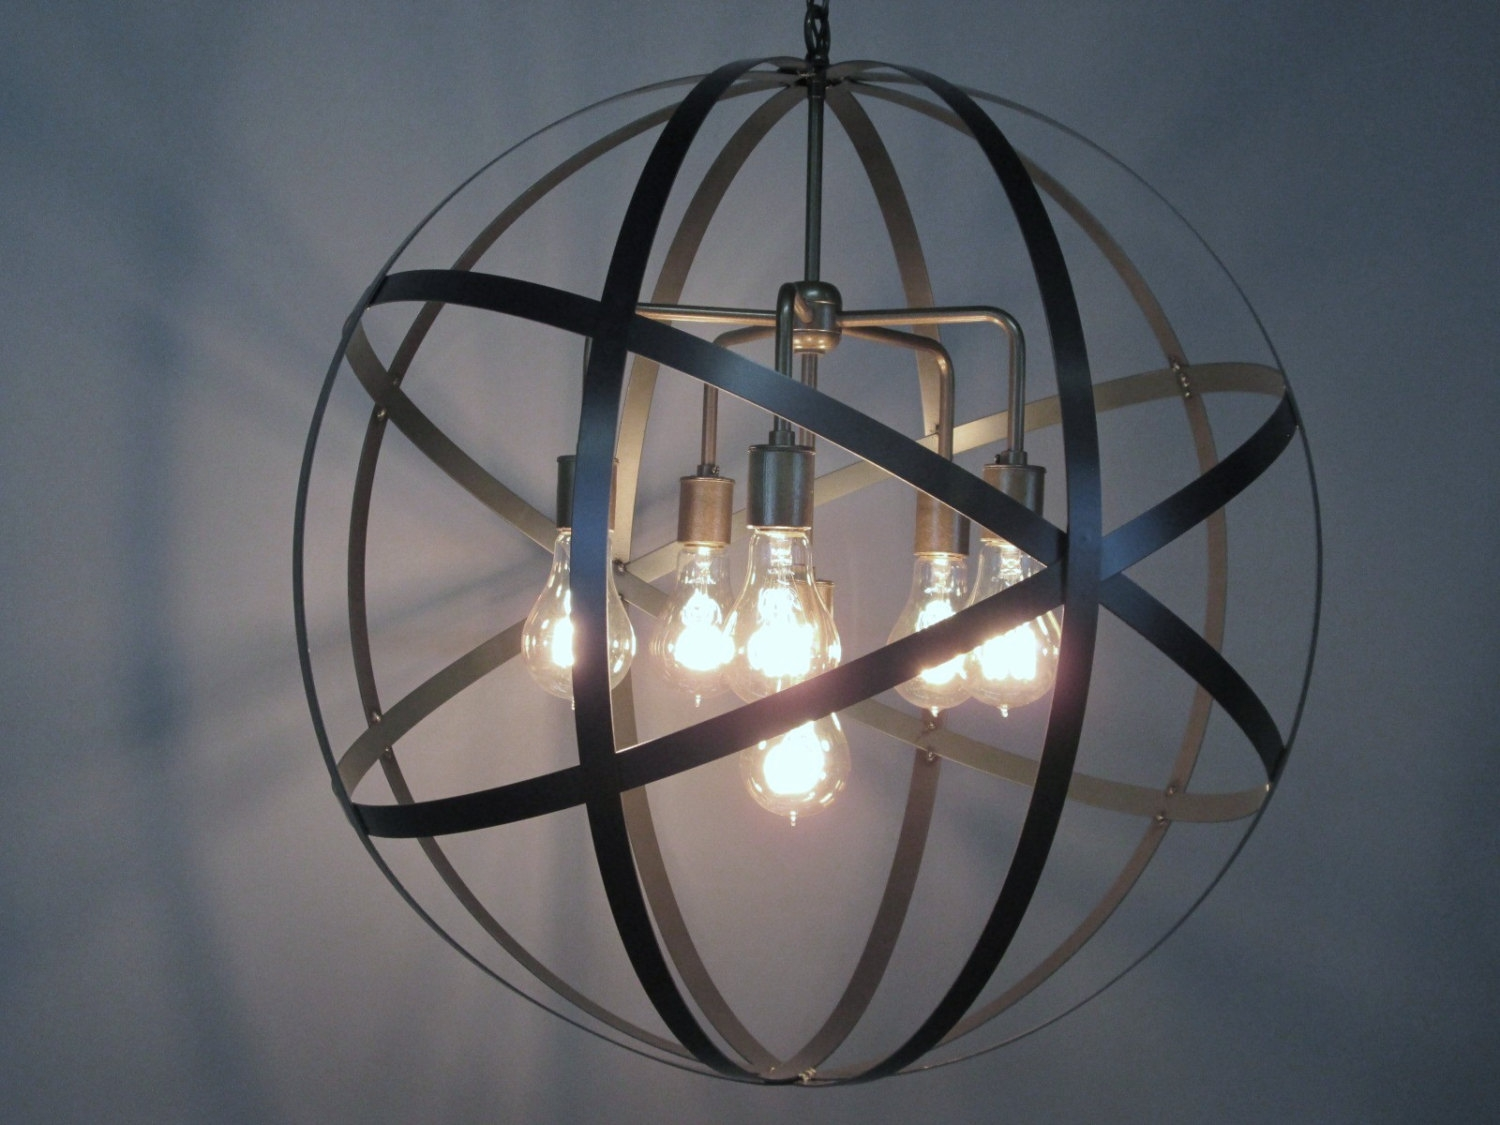 Industrial Orb Chandelier Ceiling Light Sphere 24 With Regard To Orb Chandelier (Image 10 of 15)